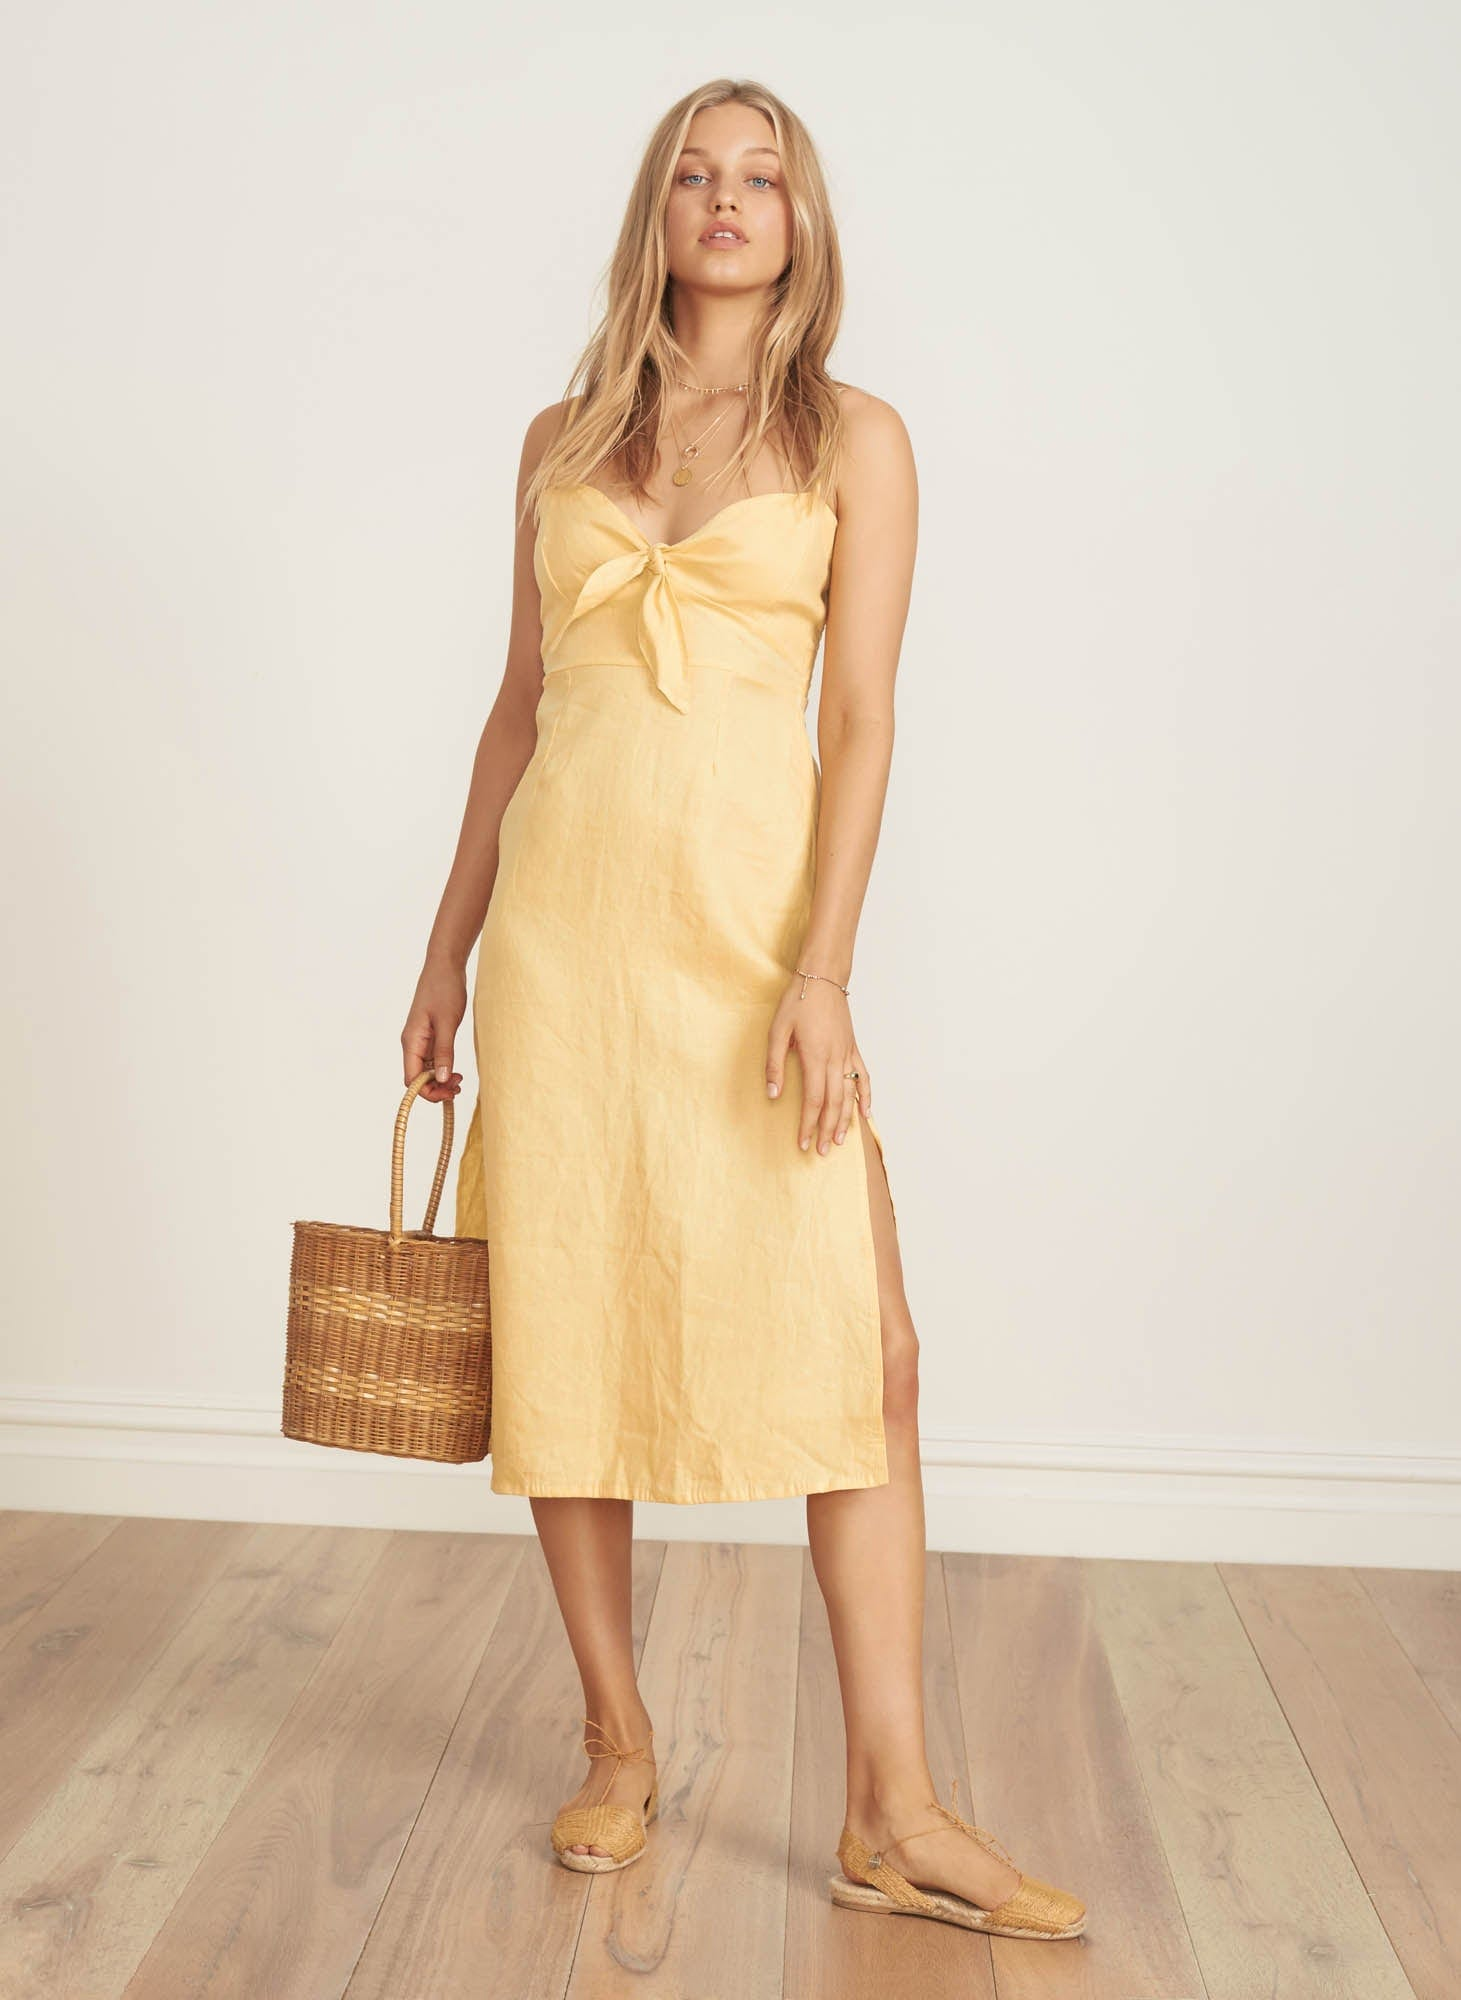 PLAIN PALE YELLOW - FISCARDO MIDI DRESS